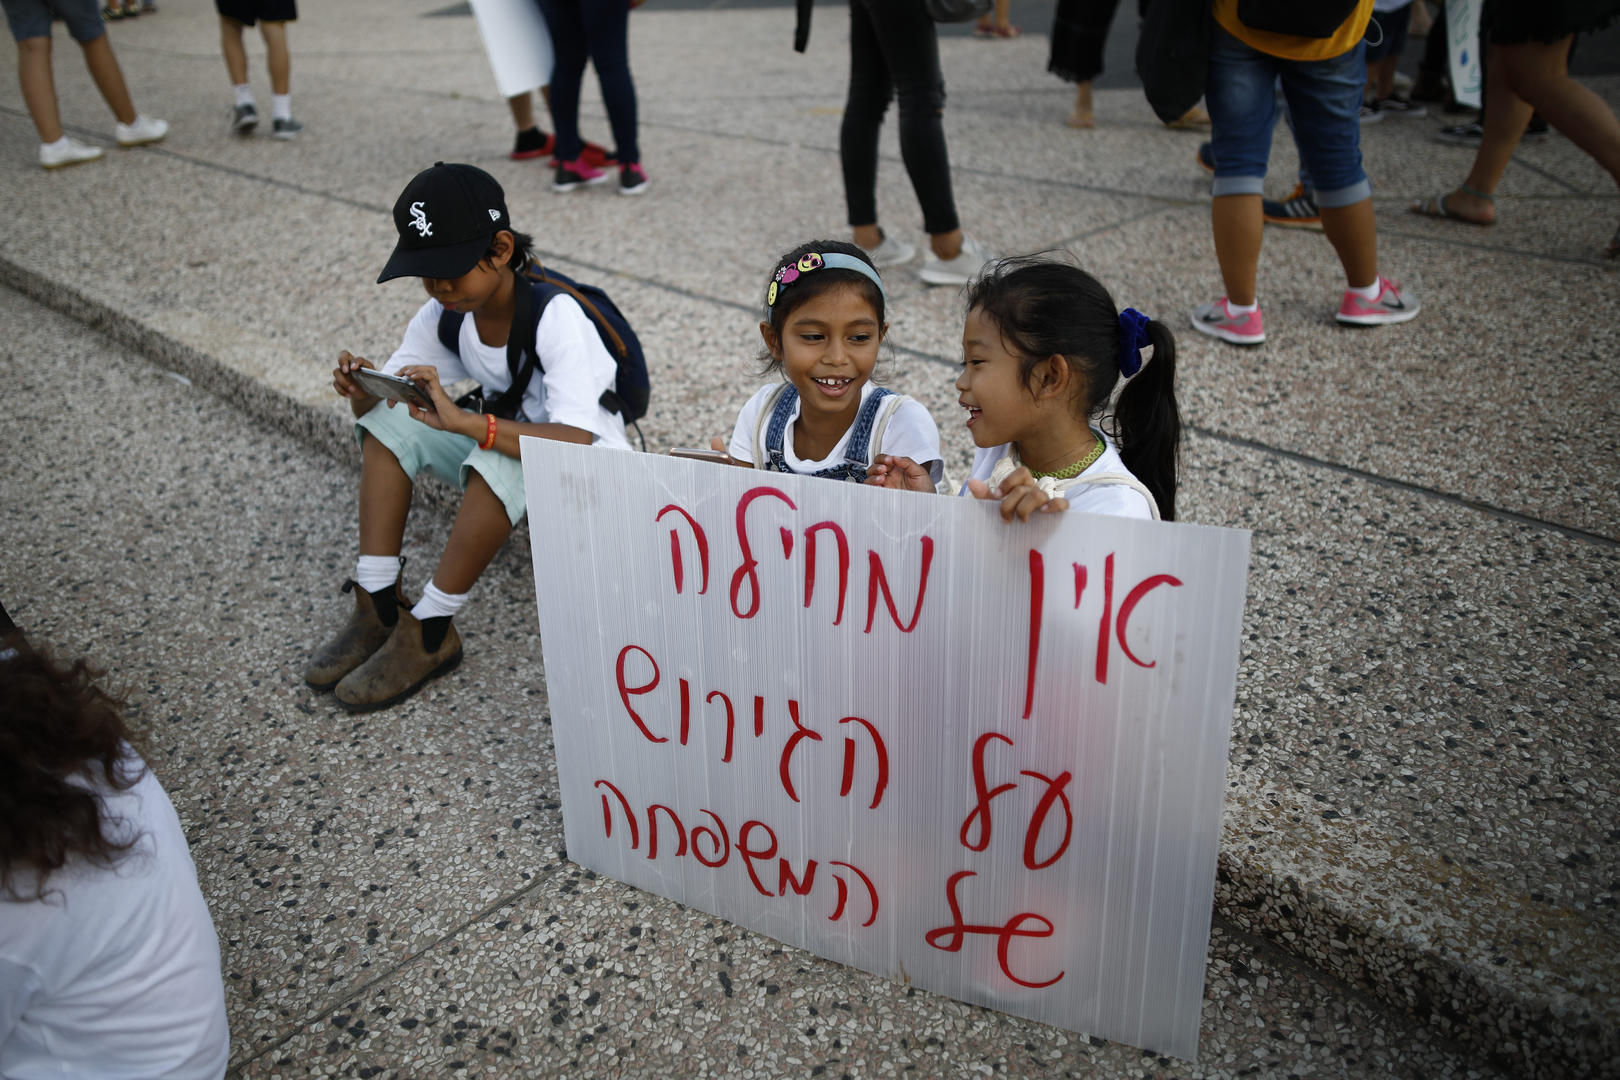 Children hold a sign at a protest.